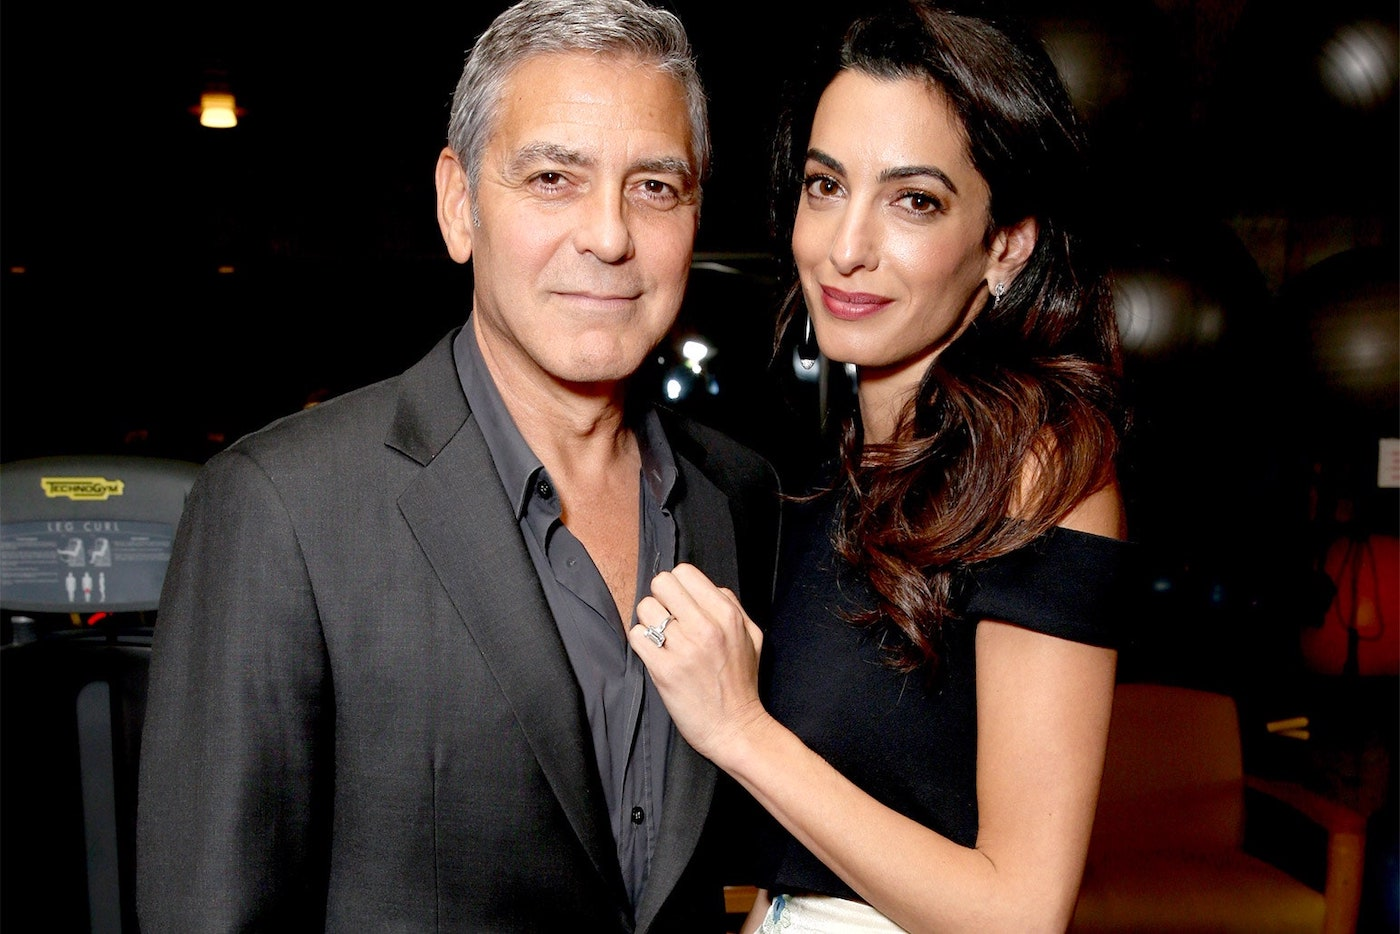 What's going on with George Clooney and his wife? Georgeclooney-01